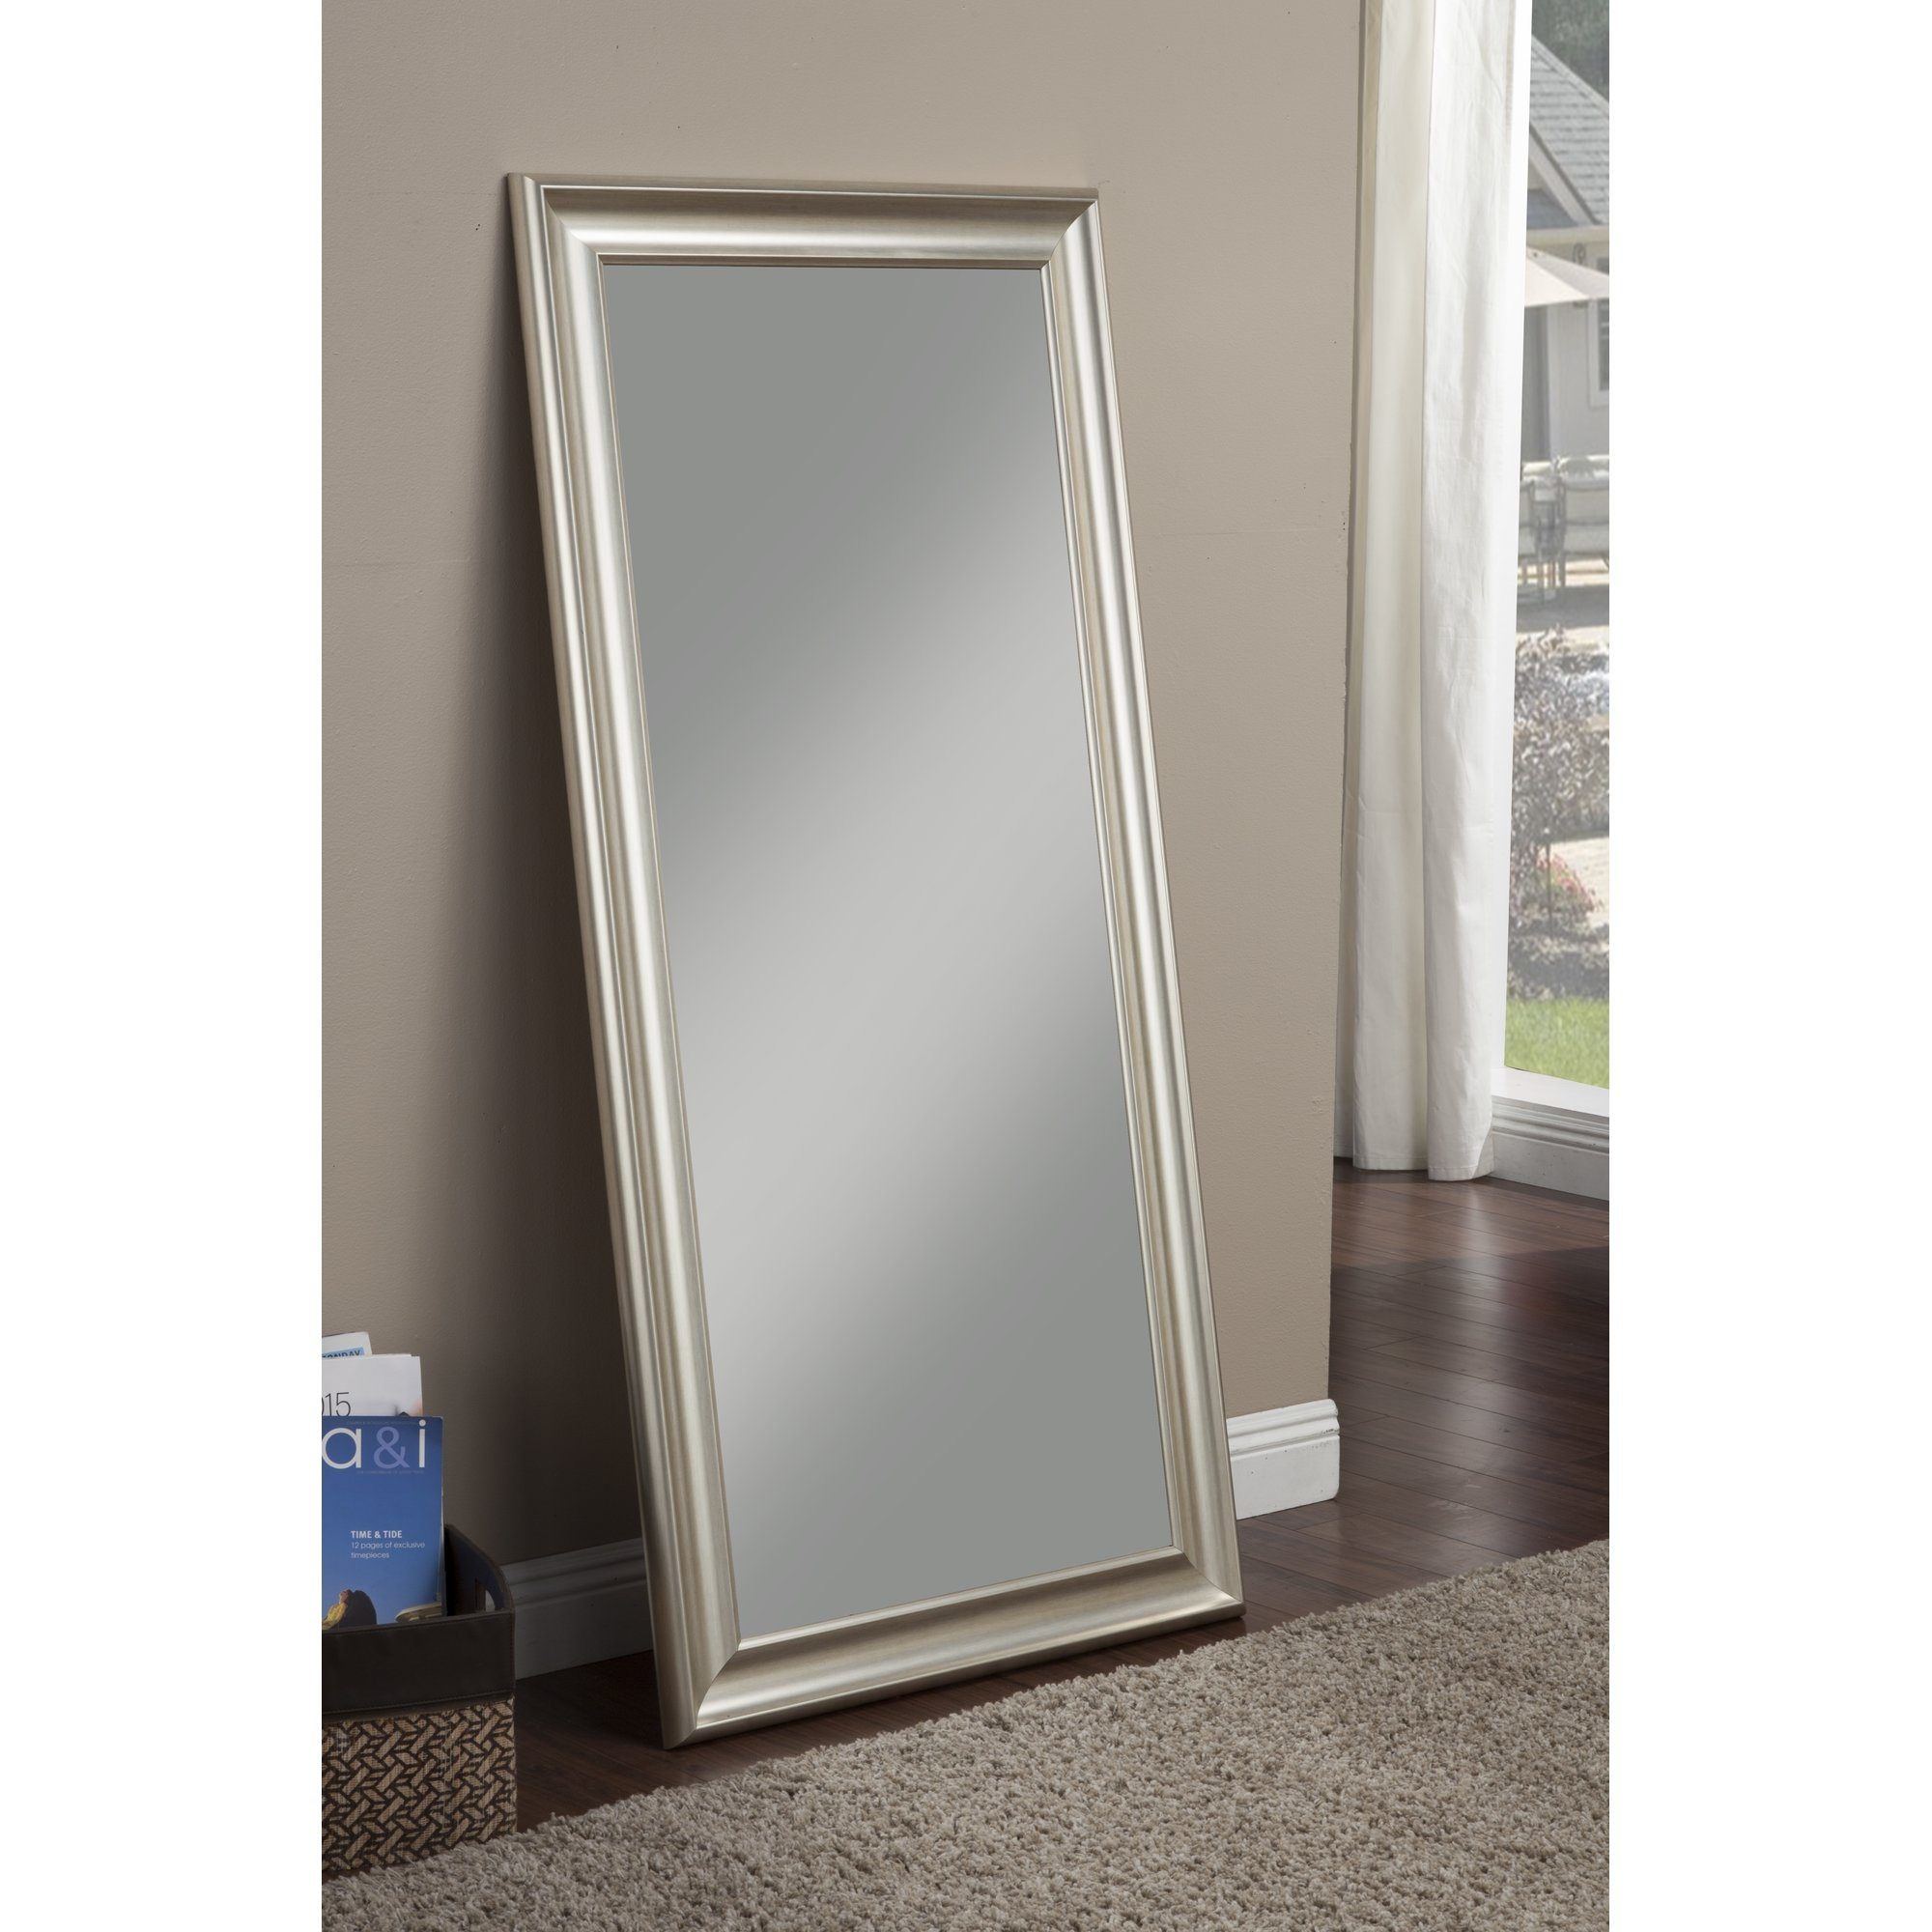 Shop 10165 Wall Mirrors Wayfair Regarding Full Length Silver Mirror (Image 14 of 15)